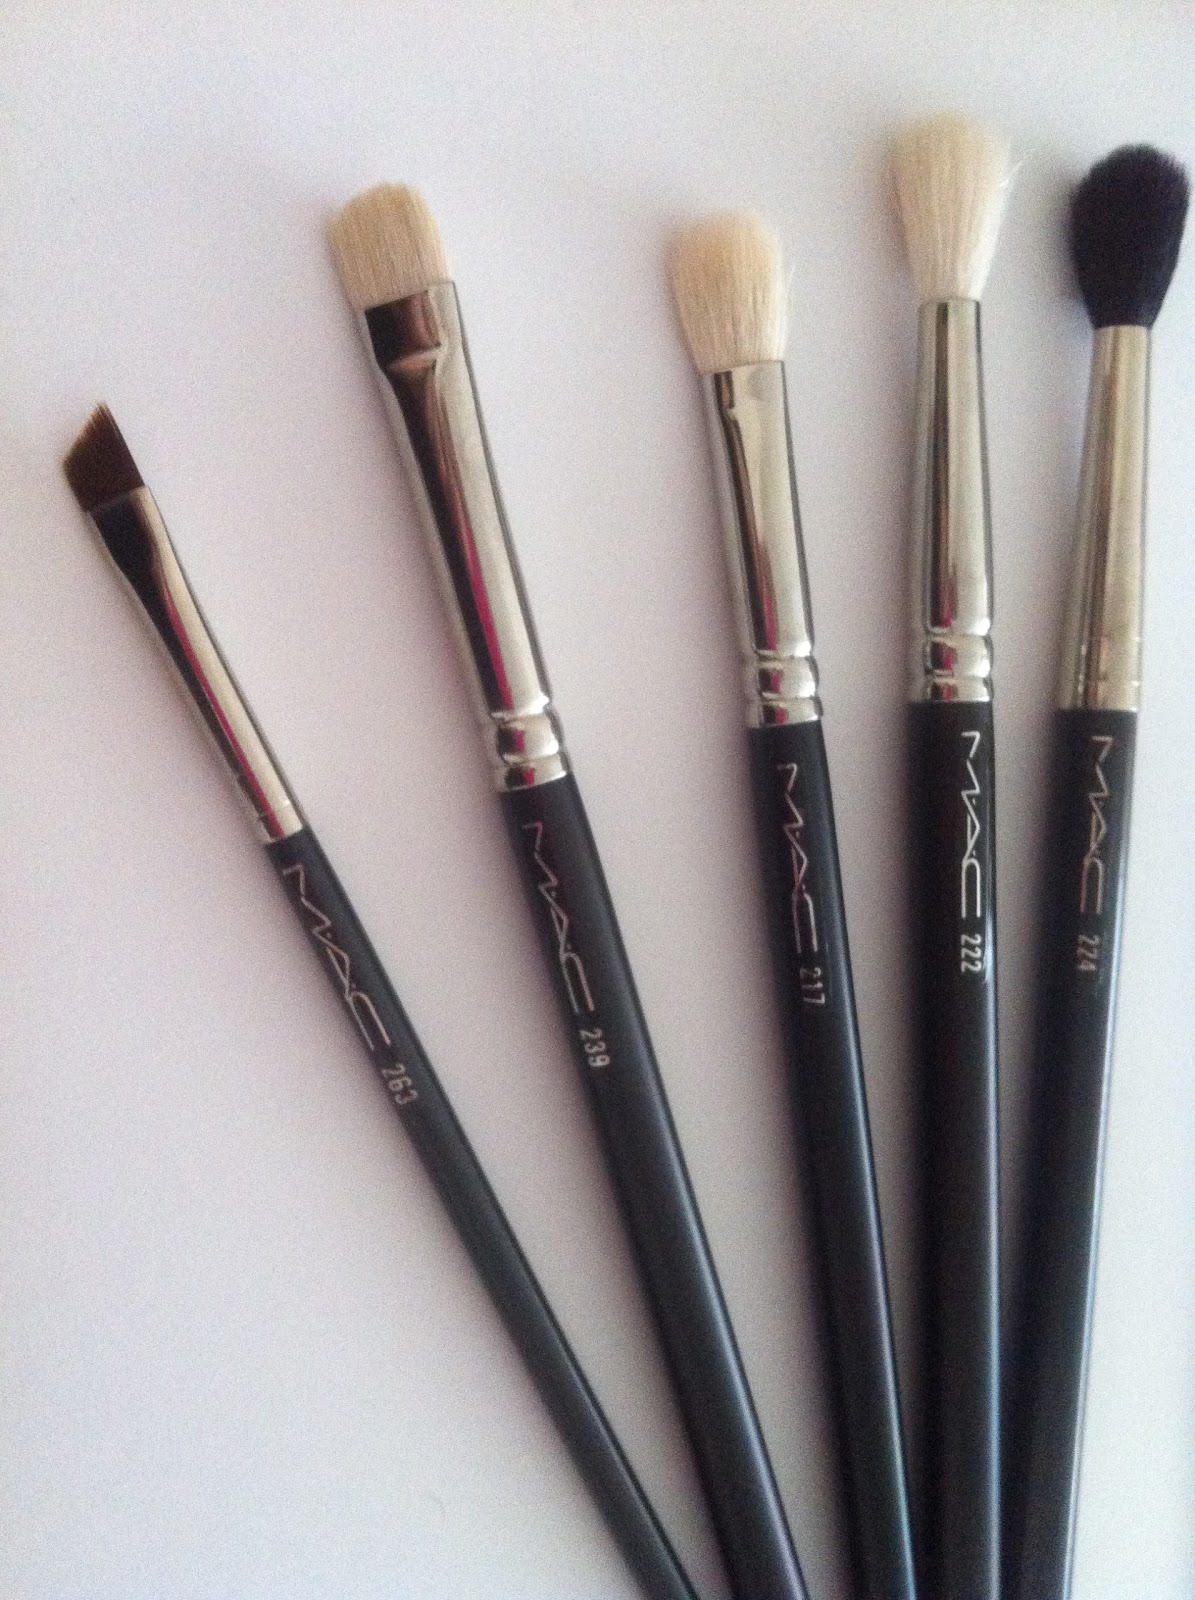 DanielleLoveMakeup: My Top 5 MAC Eye Brushes For Beginners